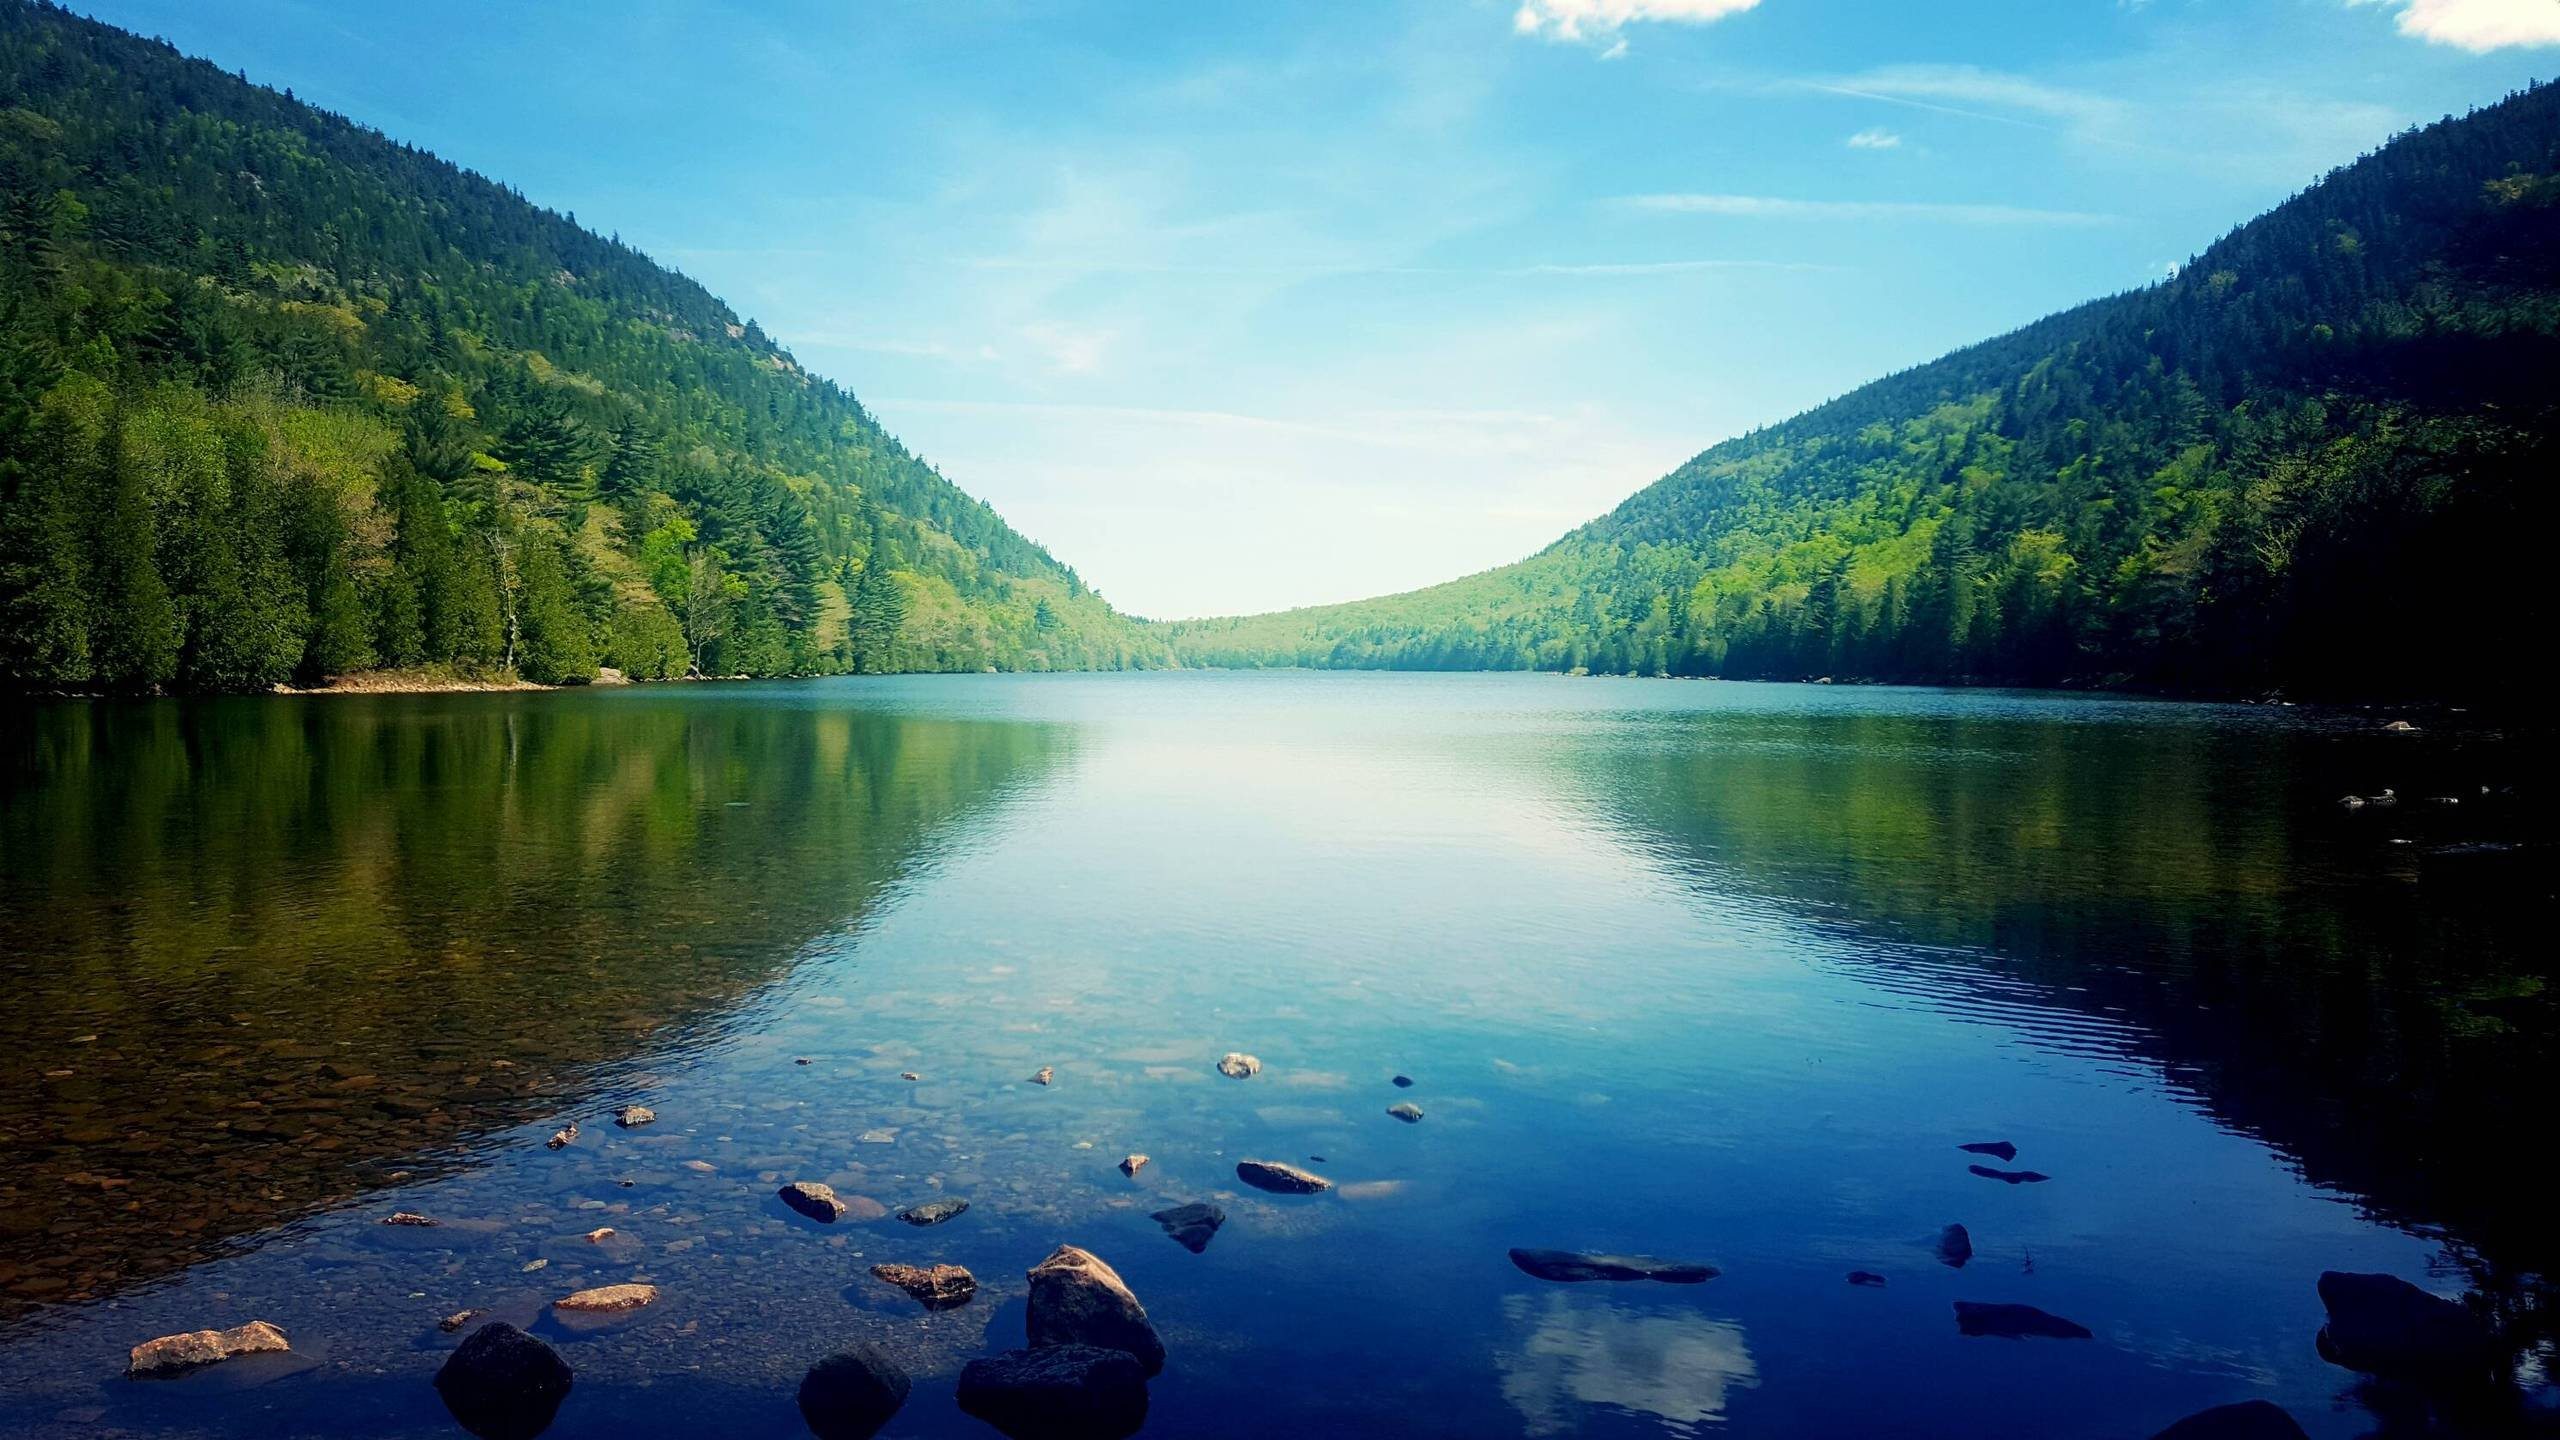 Jordan Pond Acadia National Park Maine wallpaper